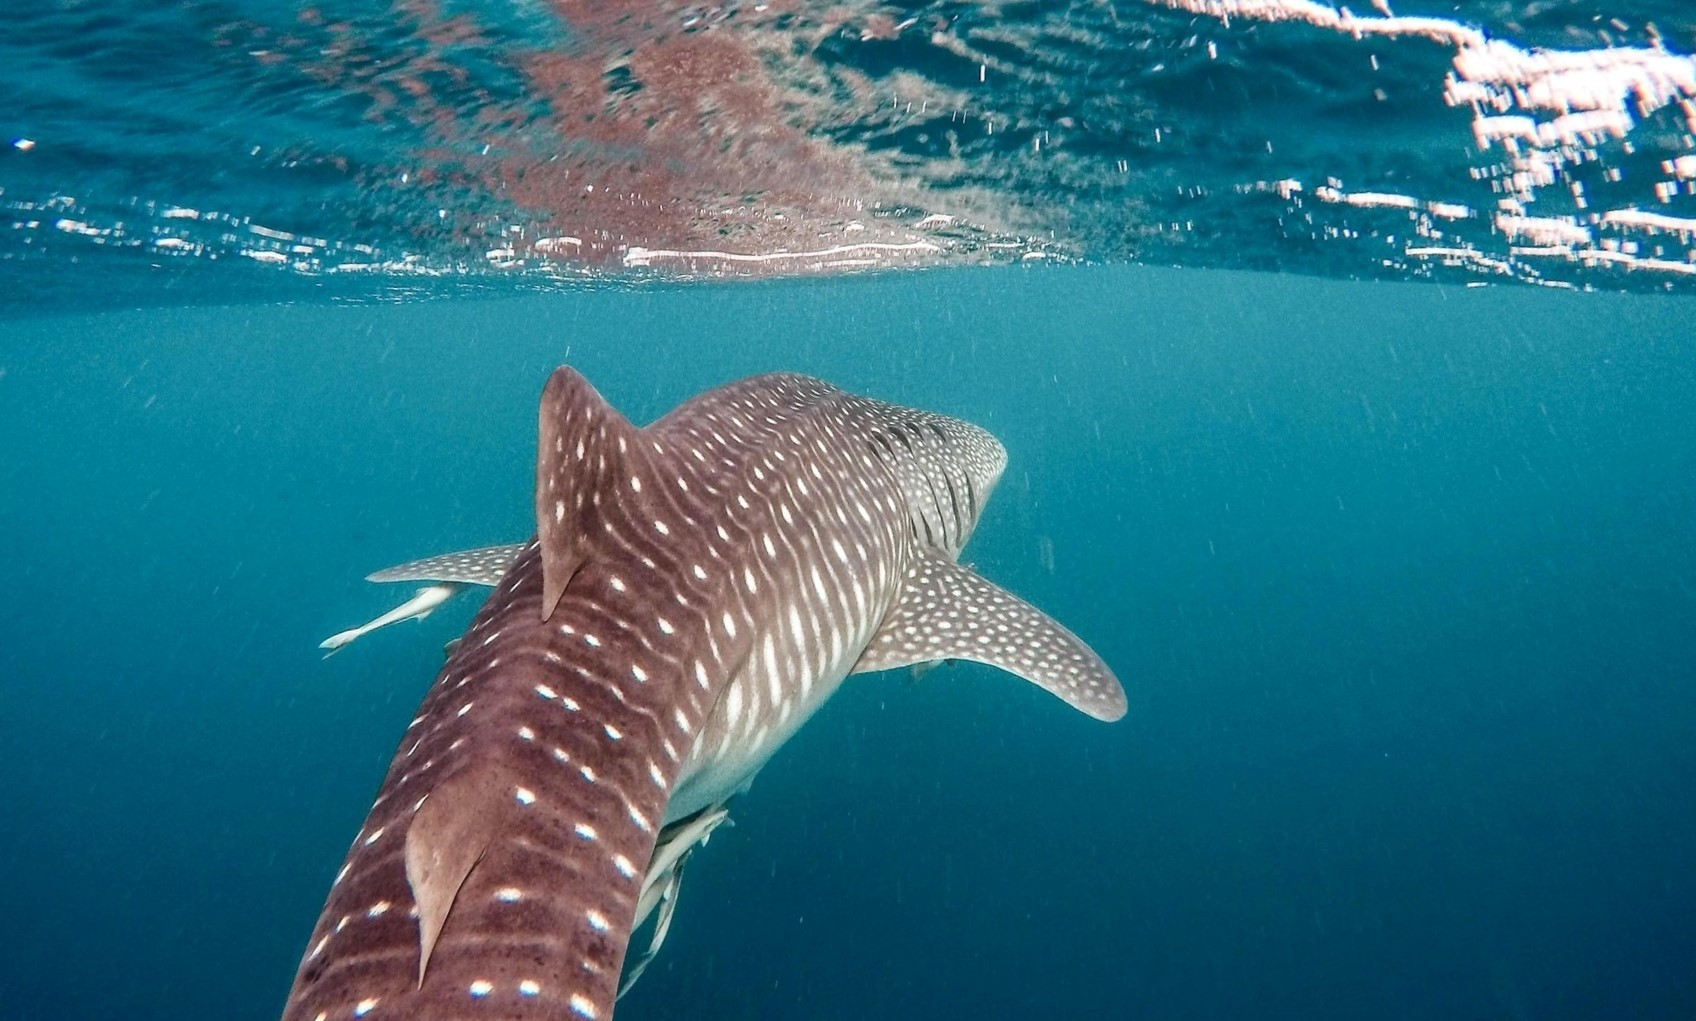 A Whale Shark in the blue waters of Ningaloo Reef, Western Australia